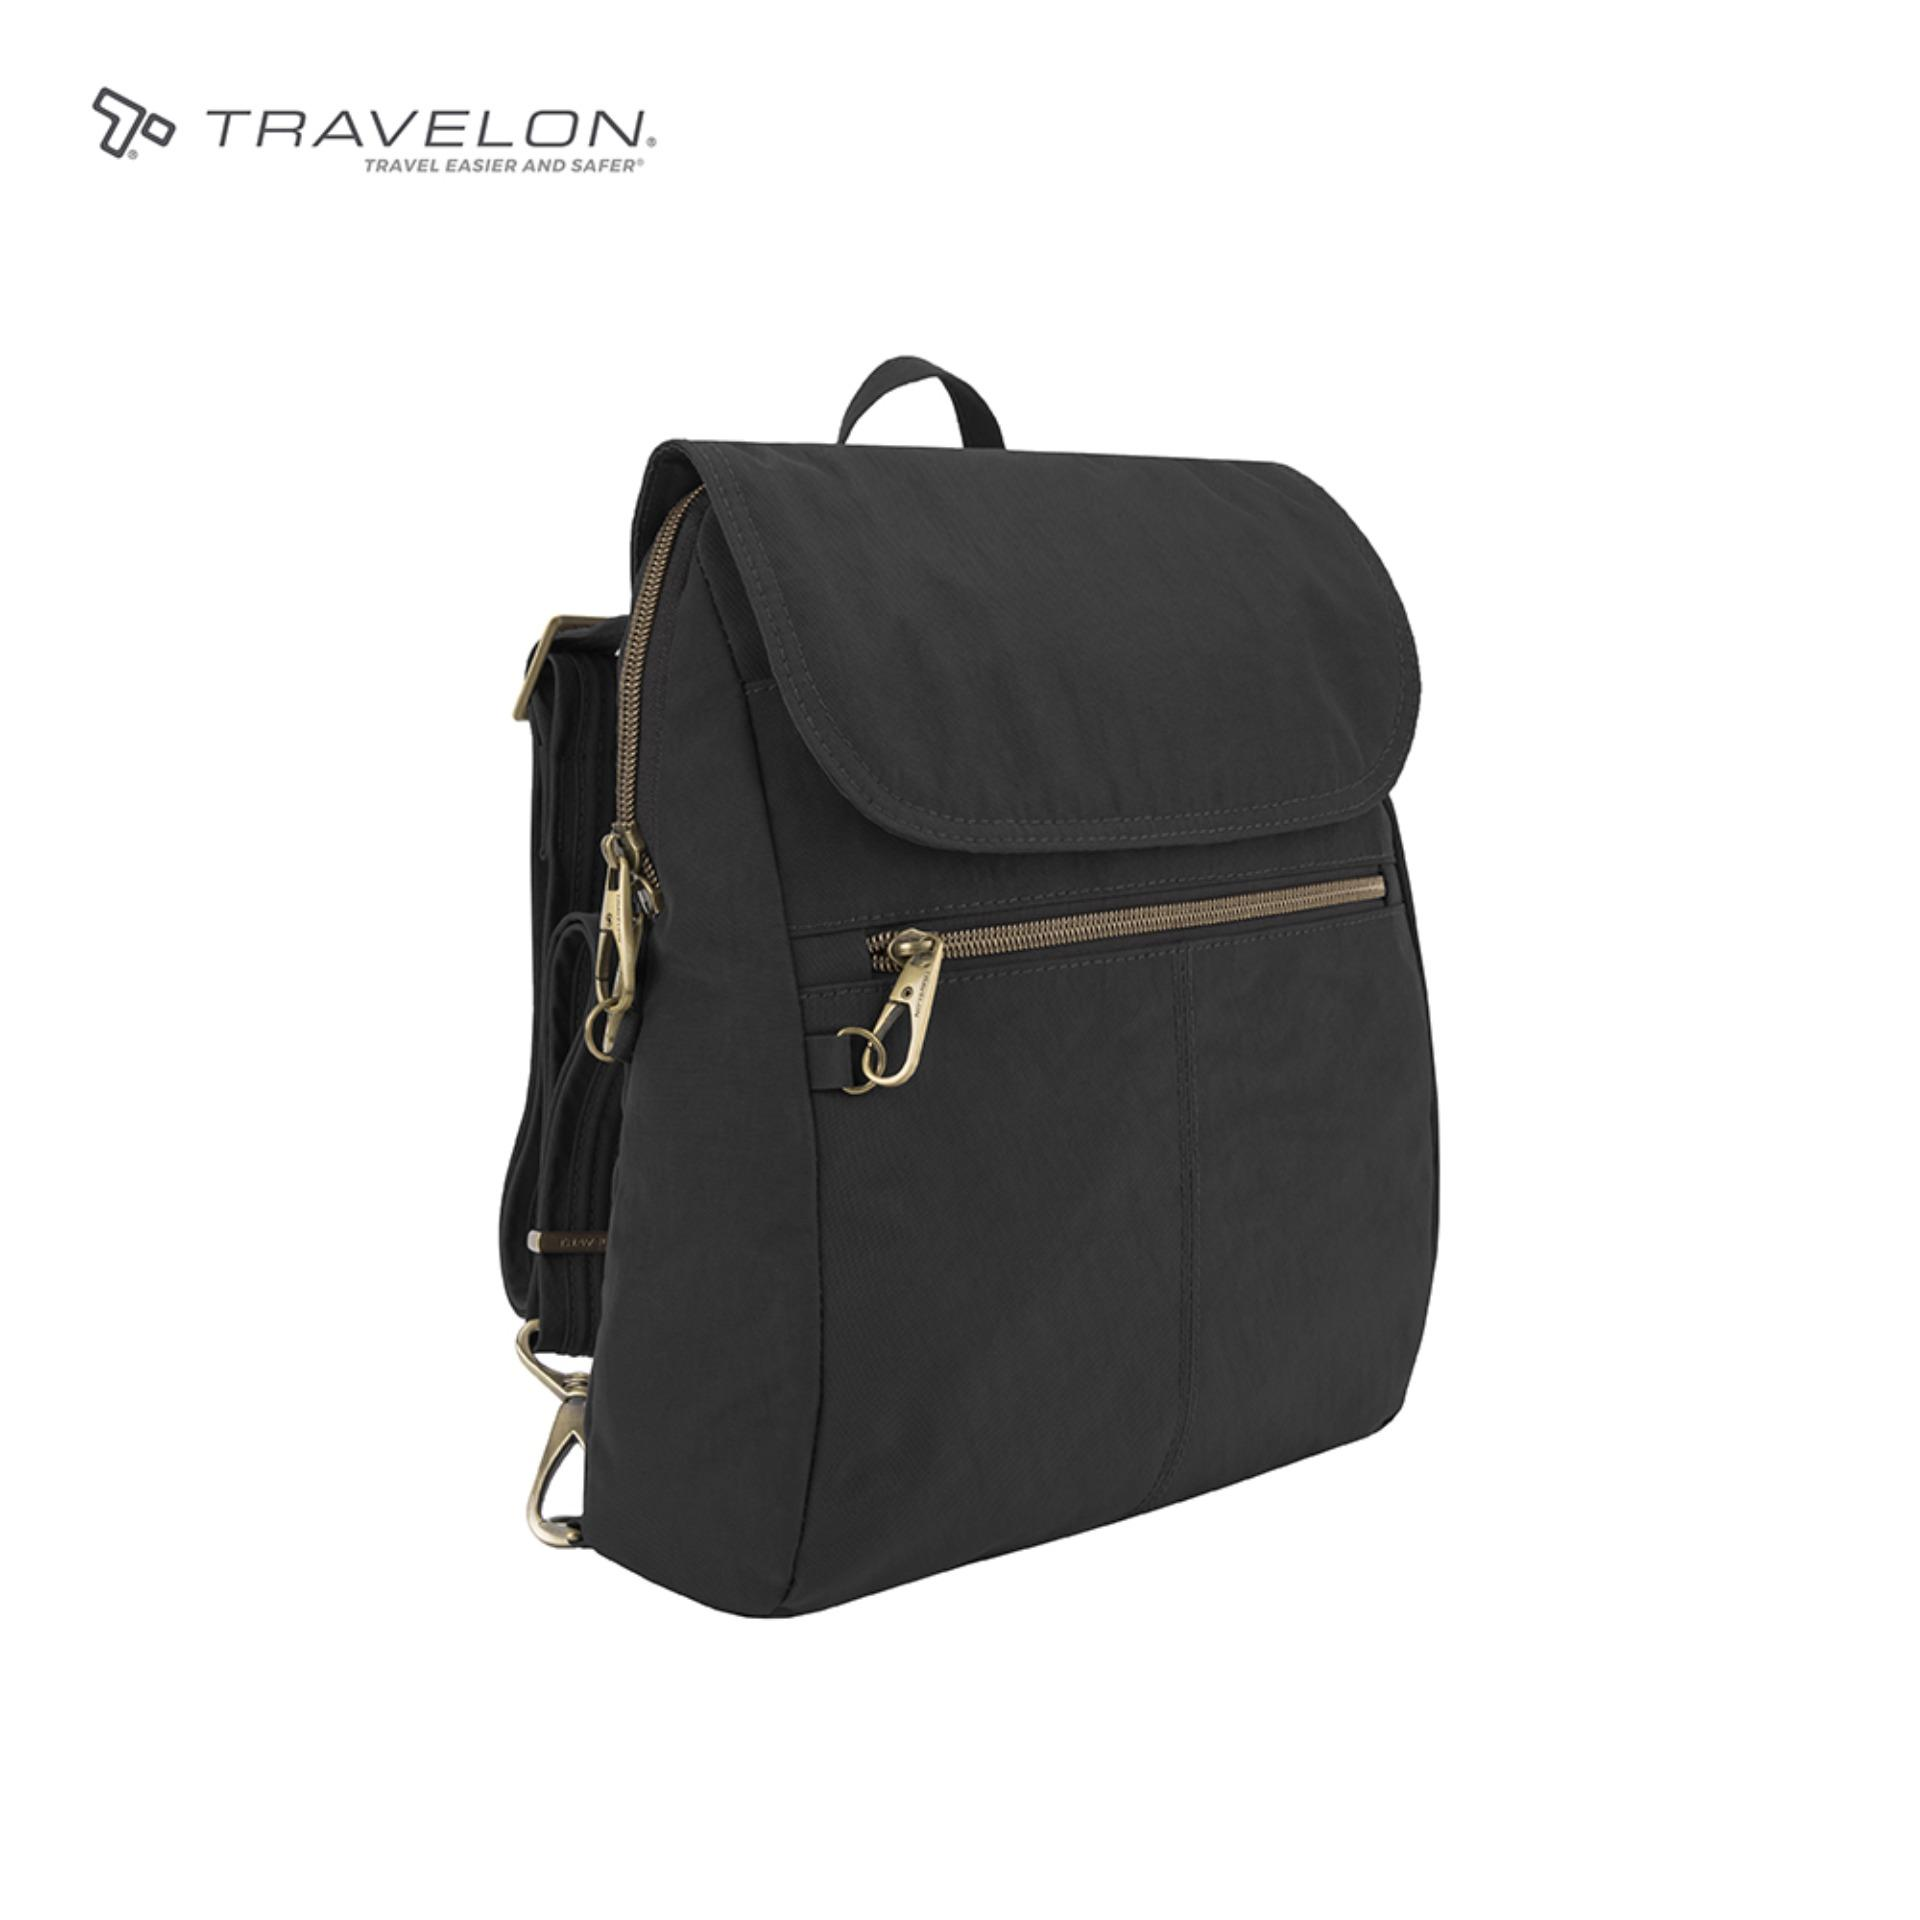 65535c40117d Travelon Signature Slim Anti-theft RFID protected Womens Safety Travel  Backpack